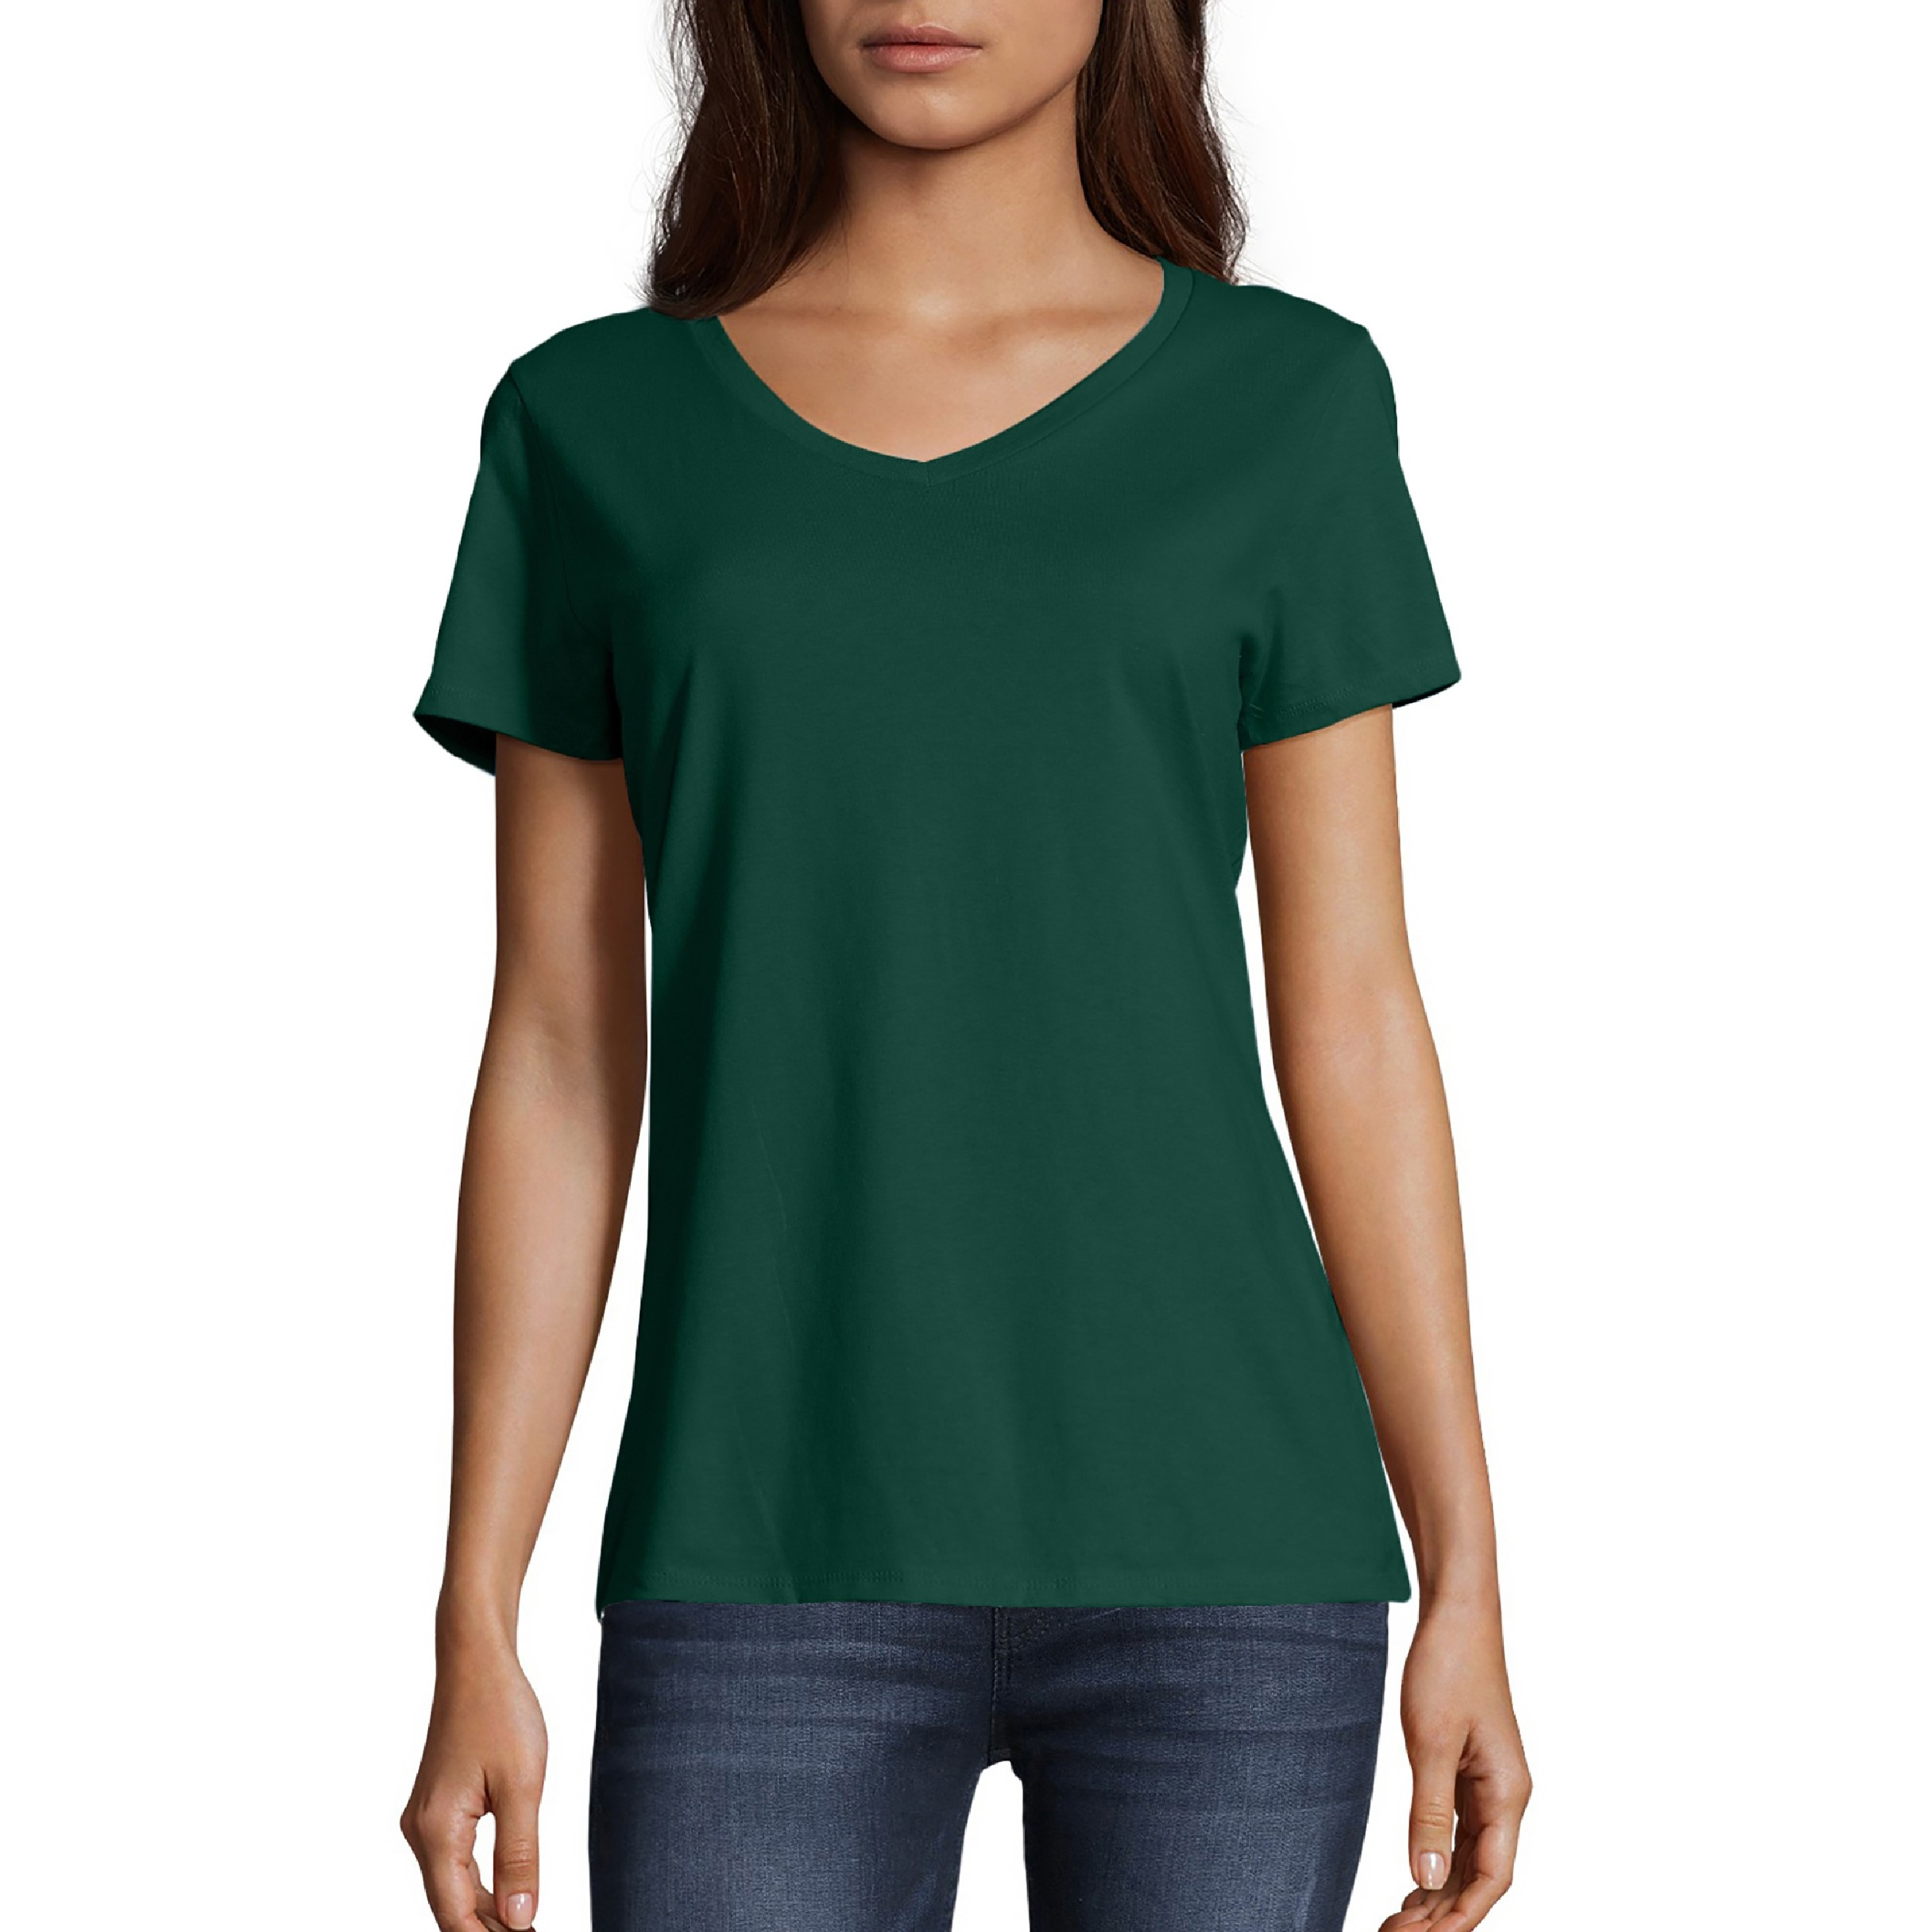 The green T-shirt